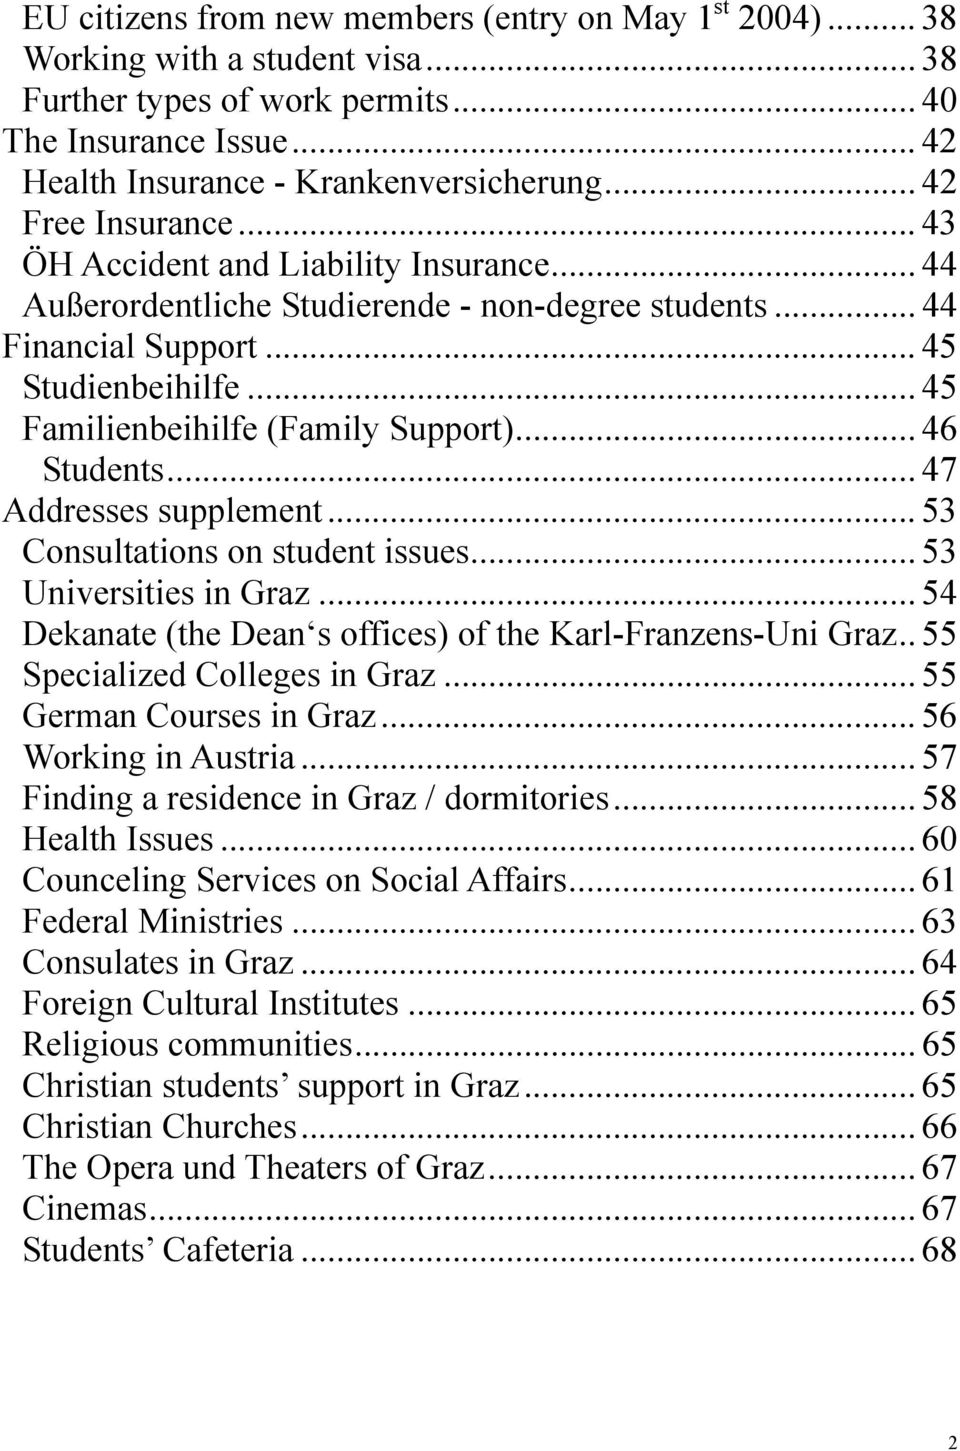 .. 45 Familienbeihilfe (Family Support)... 46 Students... 47 Addresses supplement... 53 Consultations on student issues... 53 Universities in Graz.